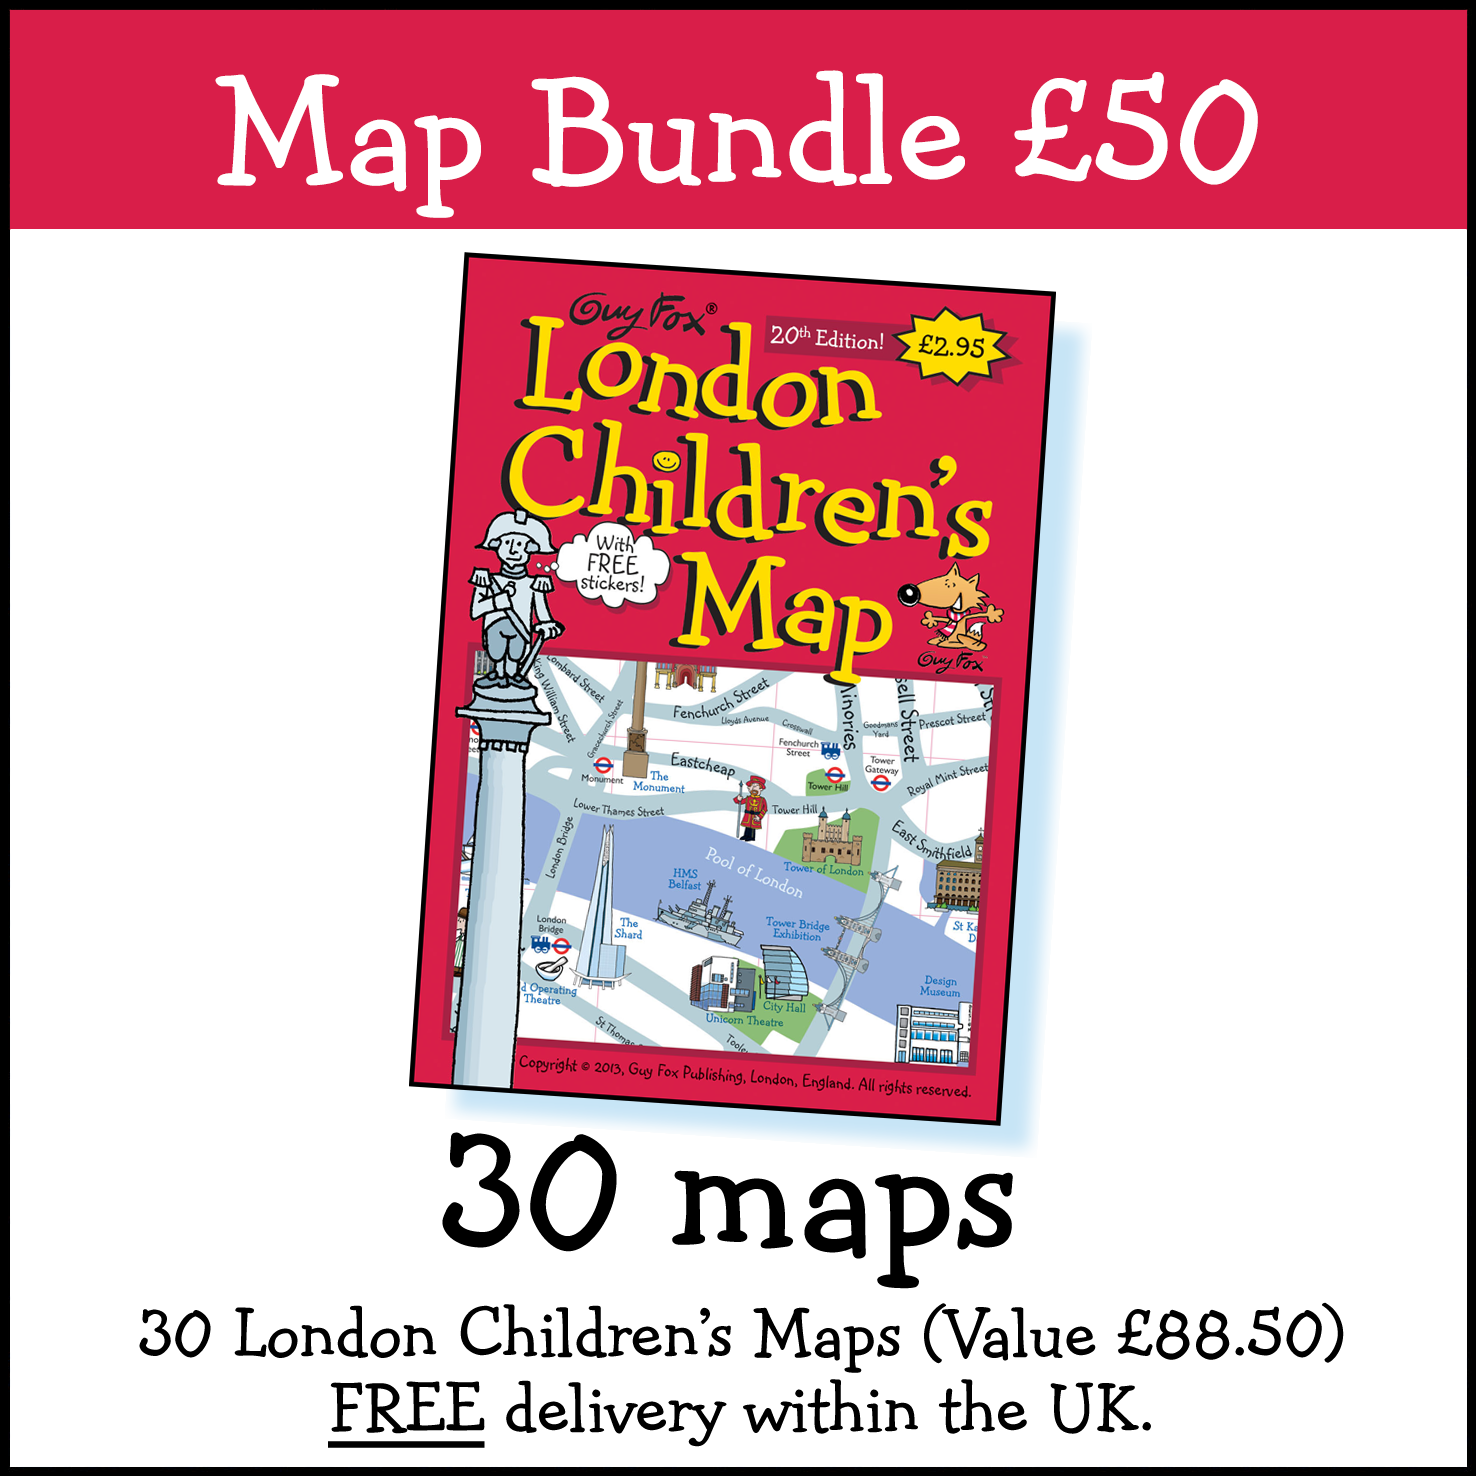 30 Maps for £50